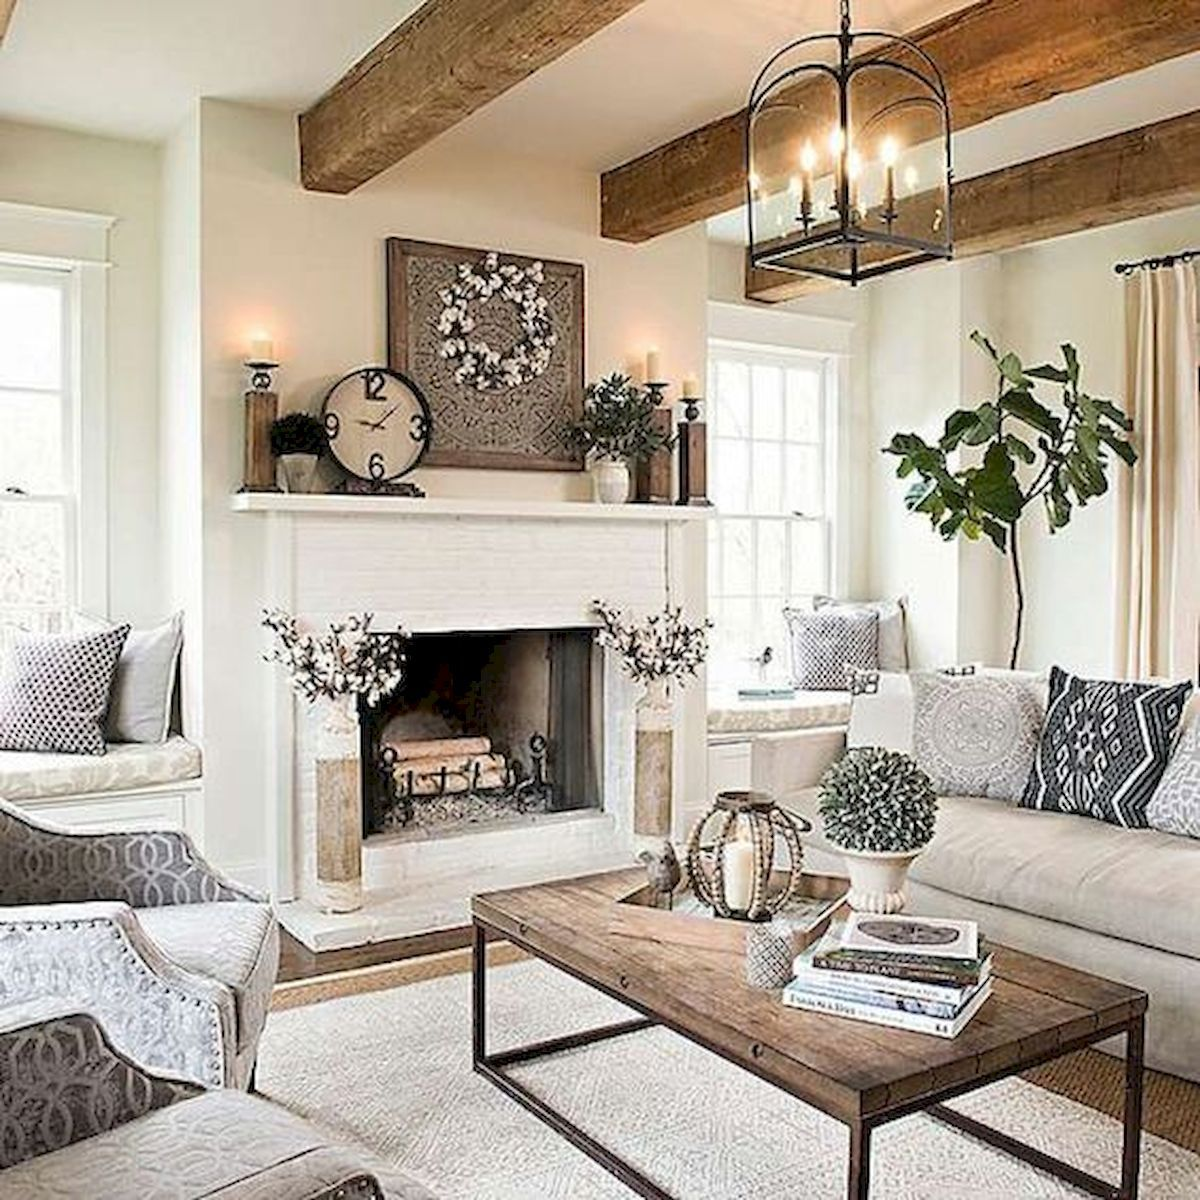 Cool elegant farmhouse living room decor ideas https roomadness also pin by simple home interior design on family in rh pinterest